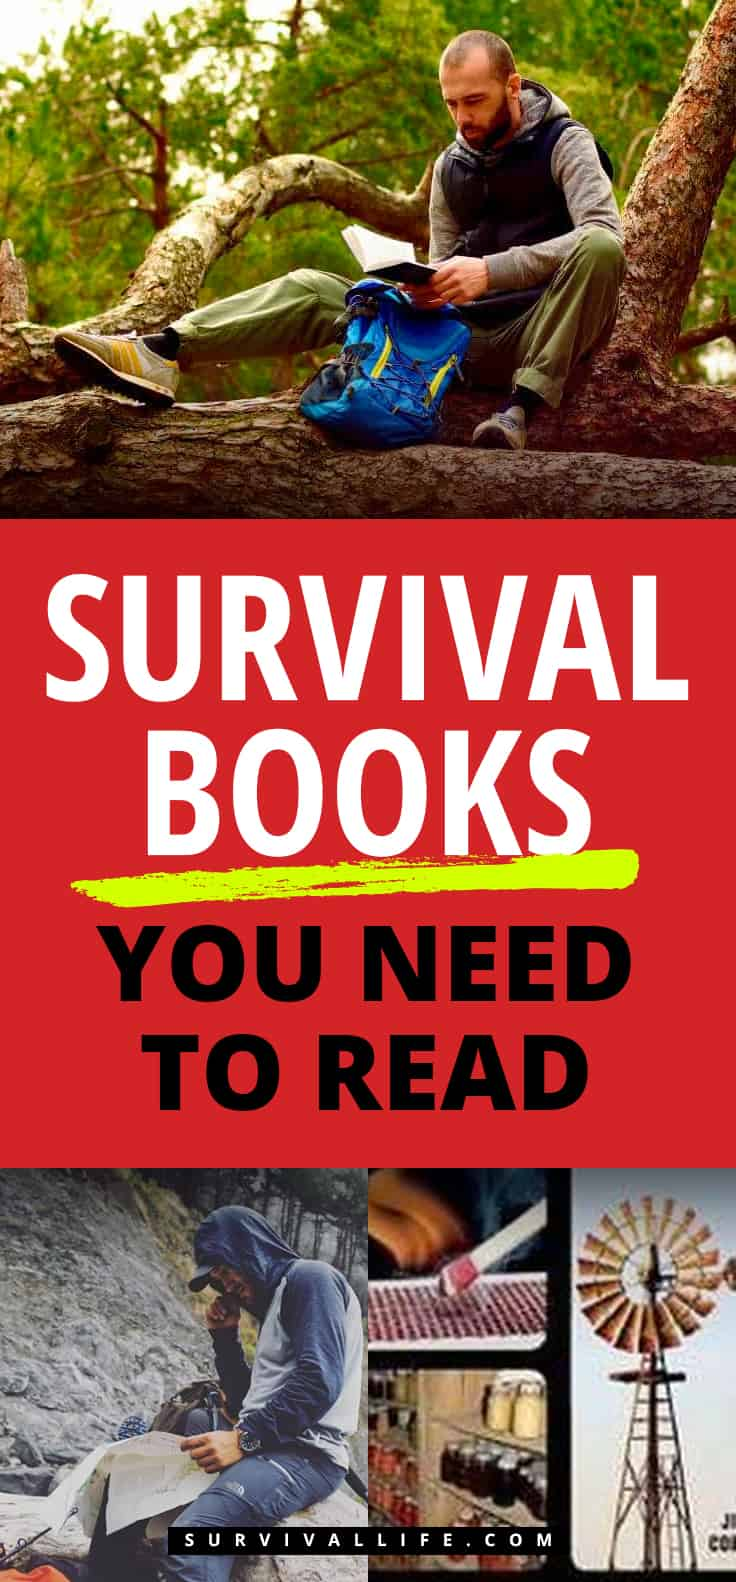 Survival Books | Survival Books You Need To Read | Survival Books You Need To Read | outdoor survival books